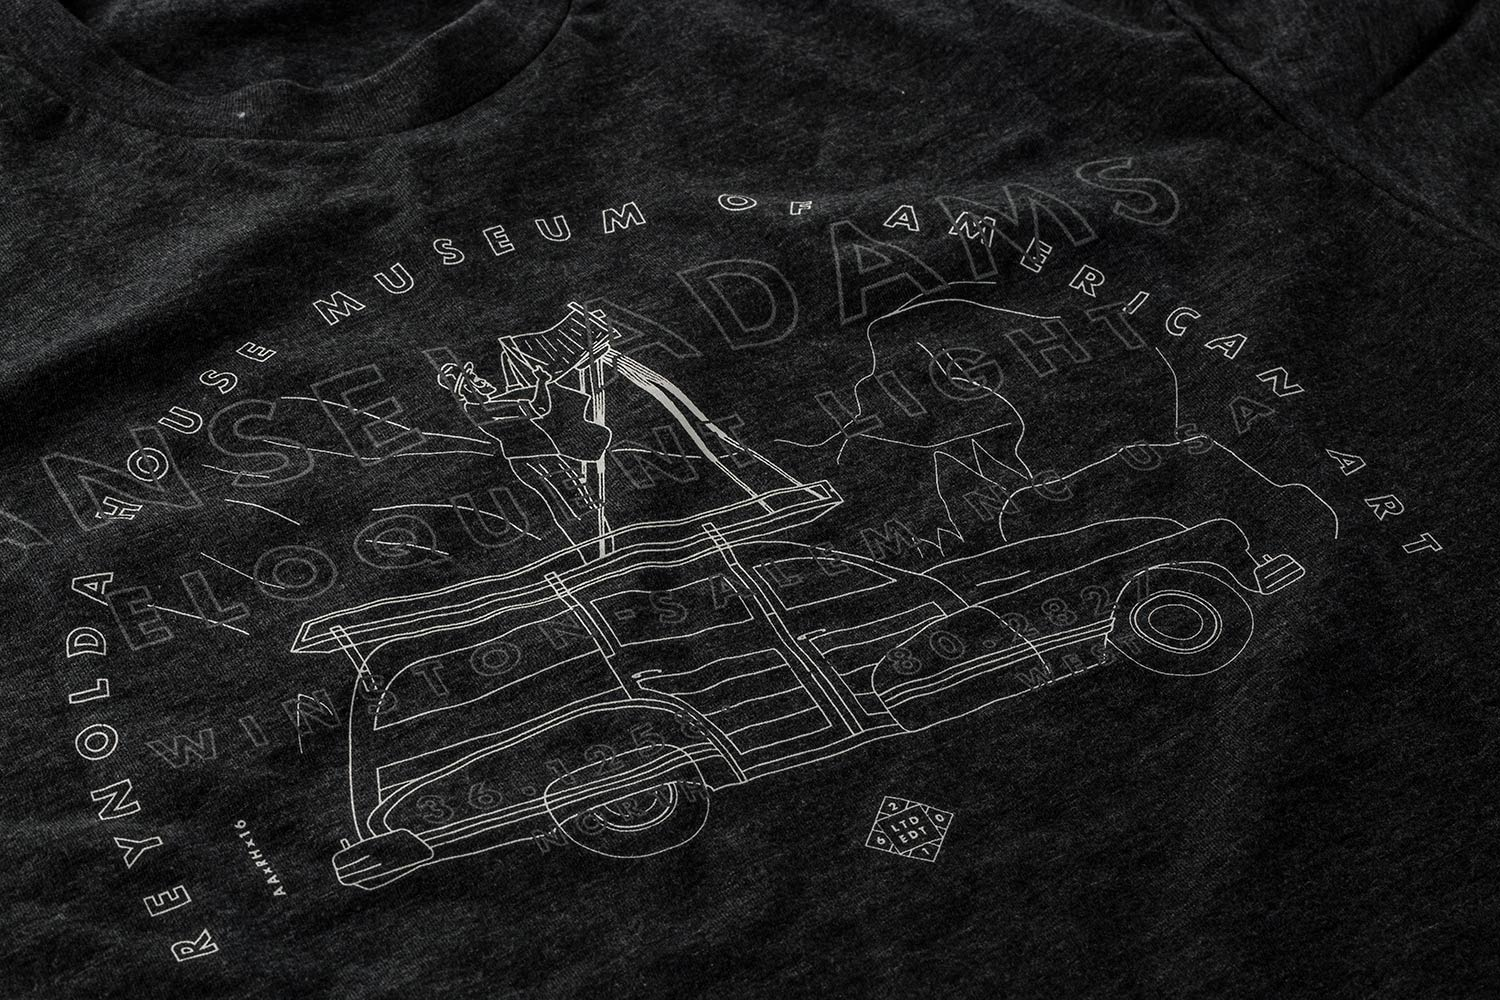 Ansel-Exhibition-Merch-Detail-01.jpg